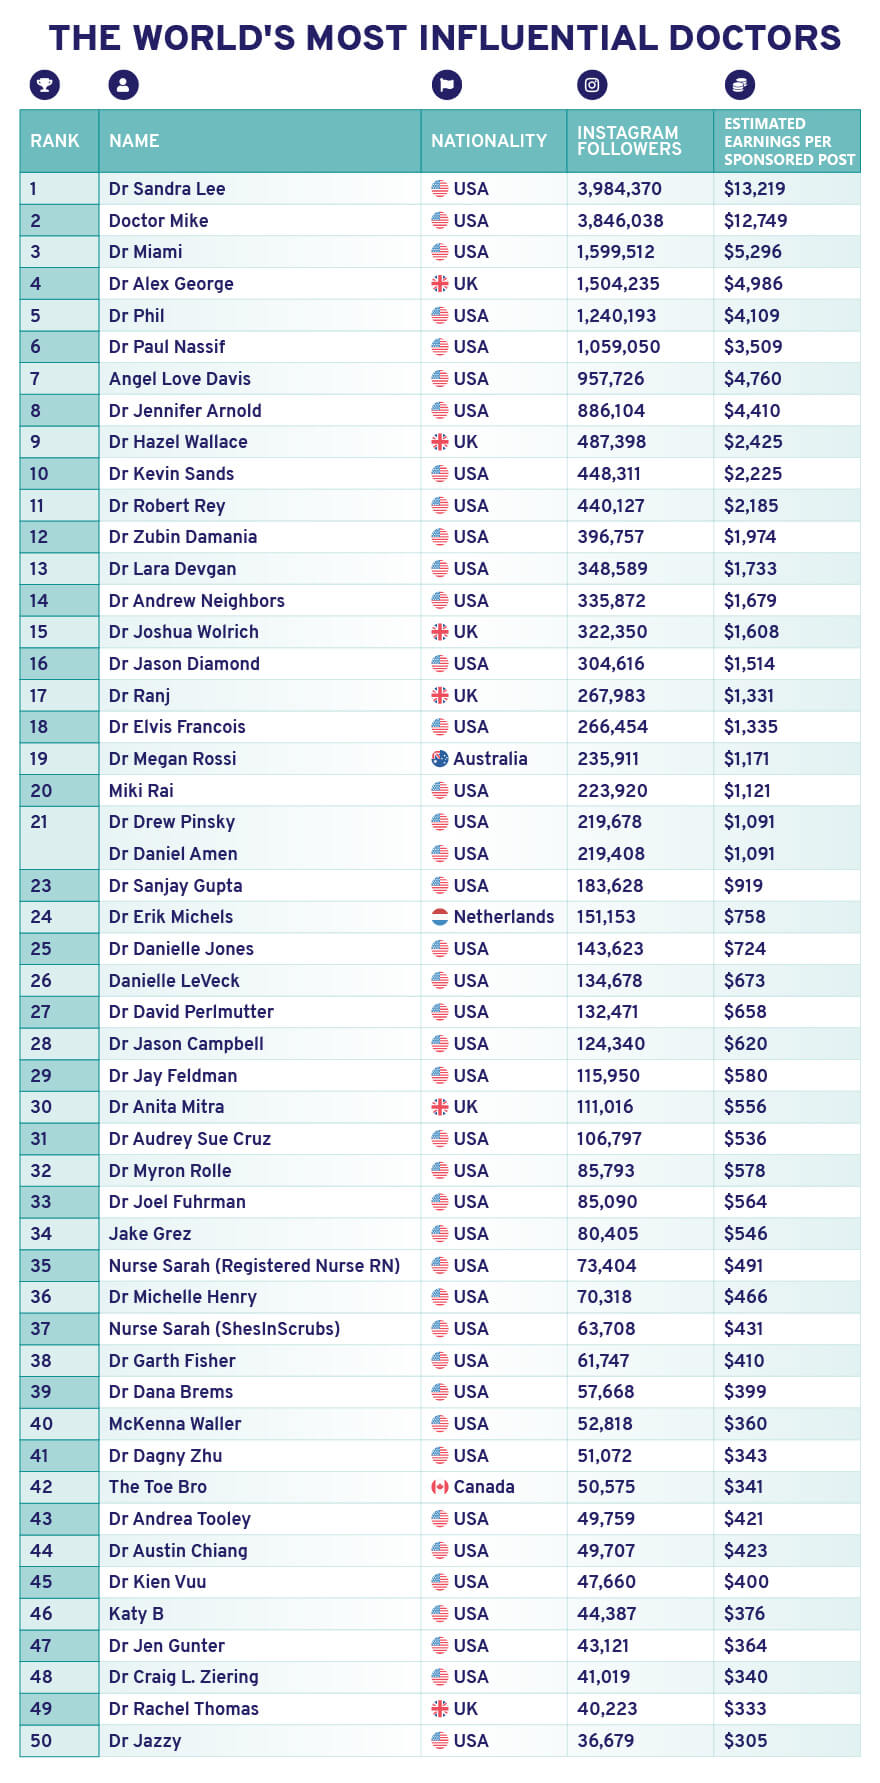 List of top 50 most influential doctors on social media in 2020